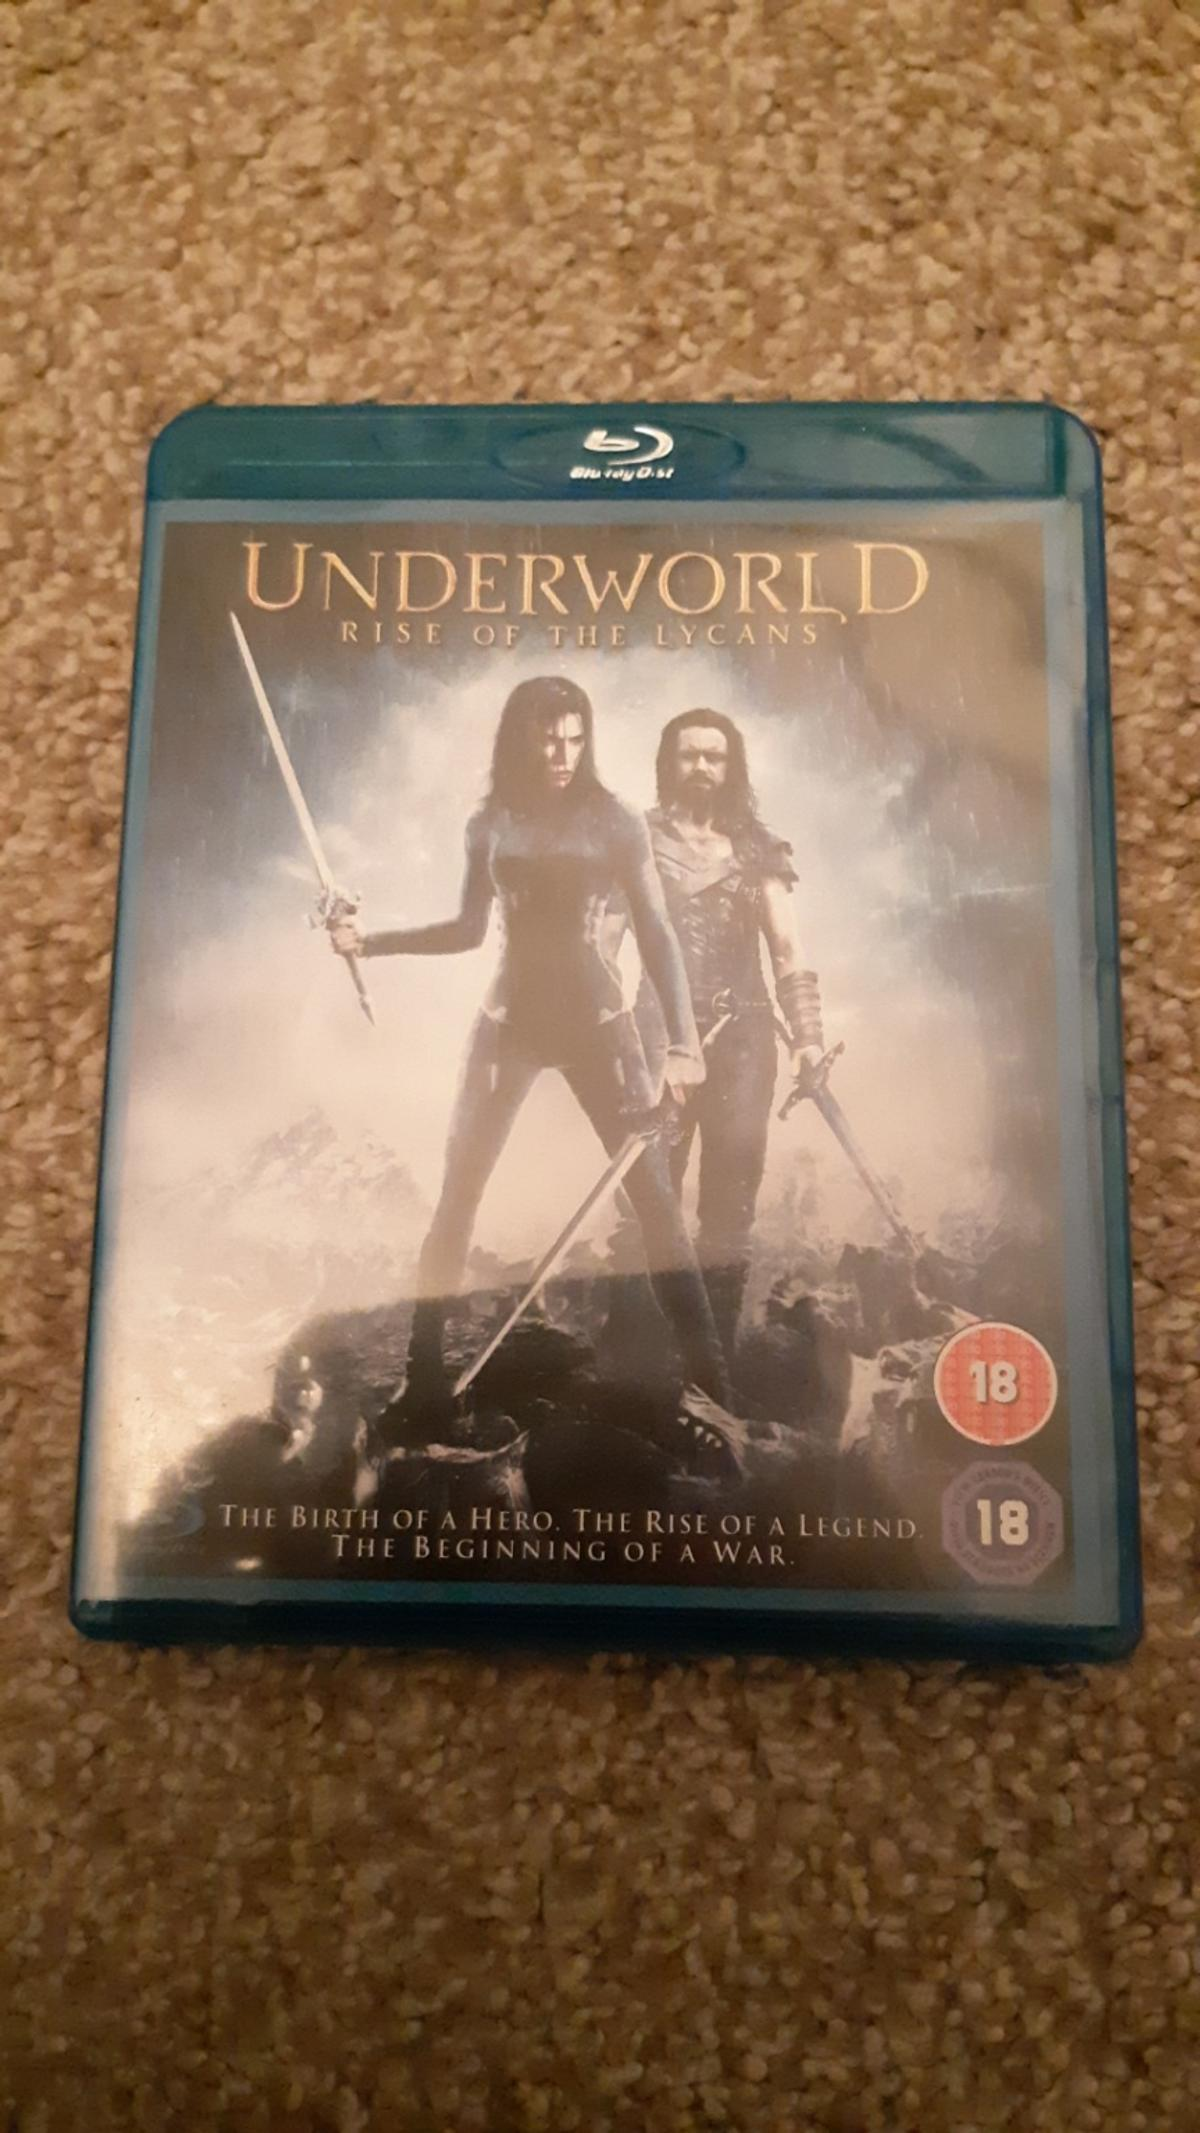 Underworld: Side of the Lycans Blu-Ray DVD